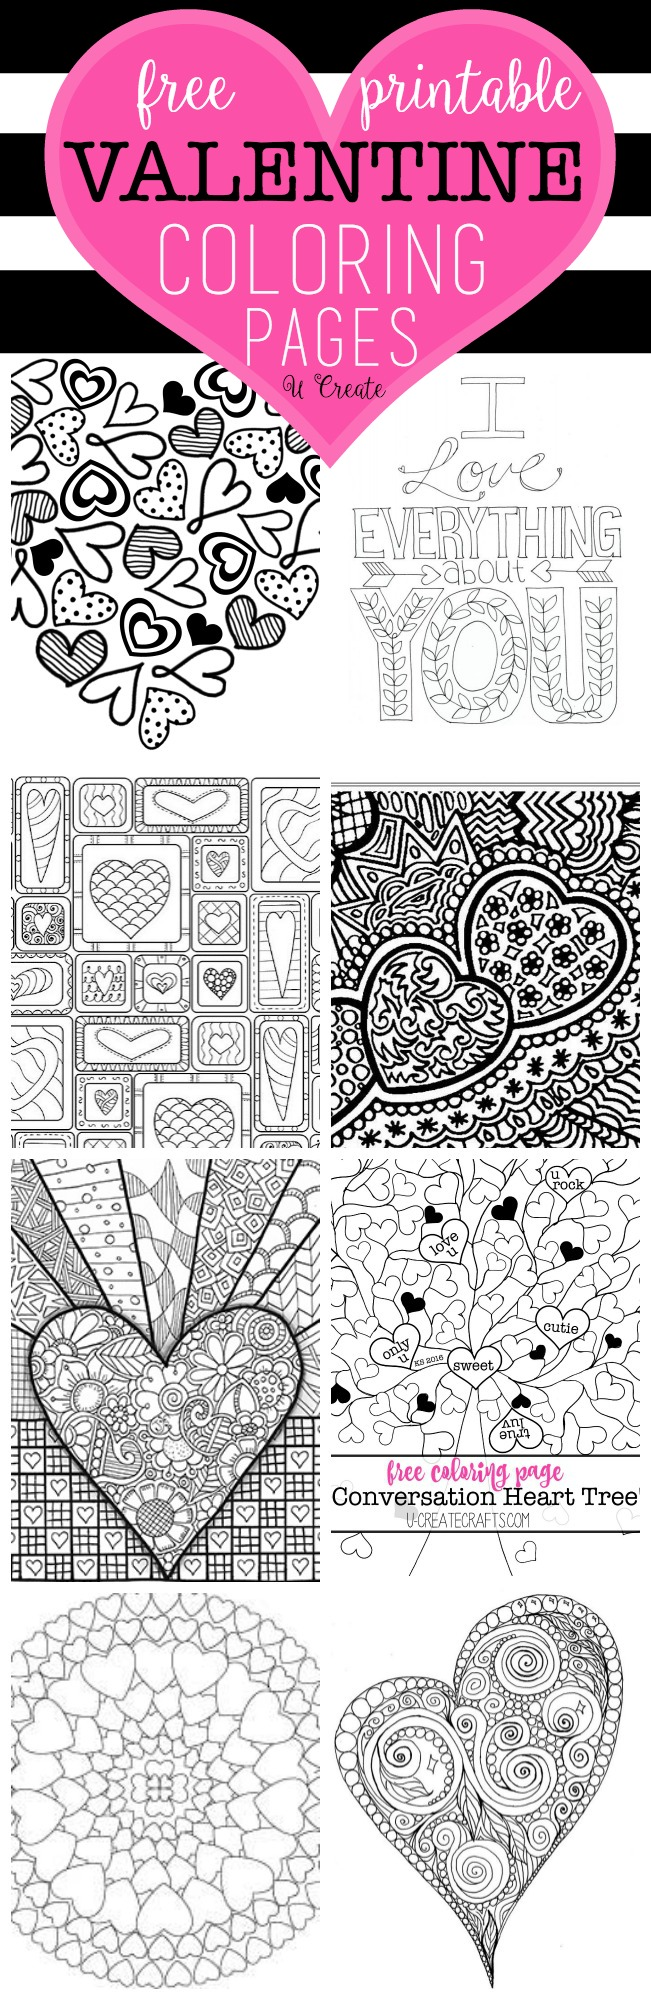 photo about Printable Valentine Coloring Page identify Totally free Valentine Coloring Web pages - U Make